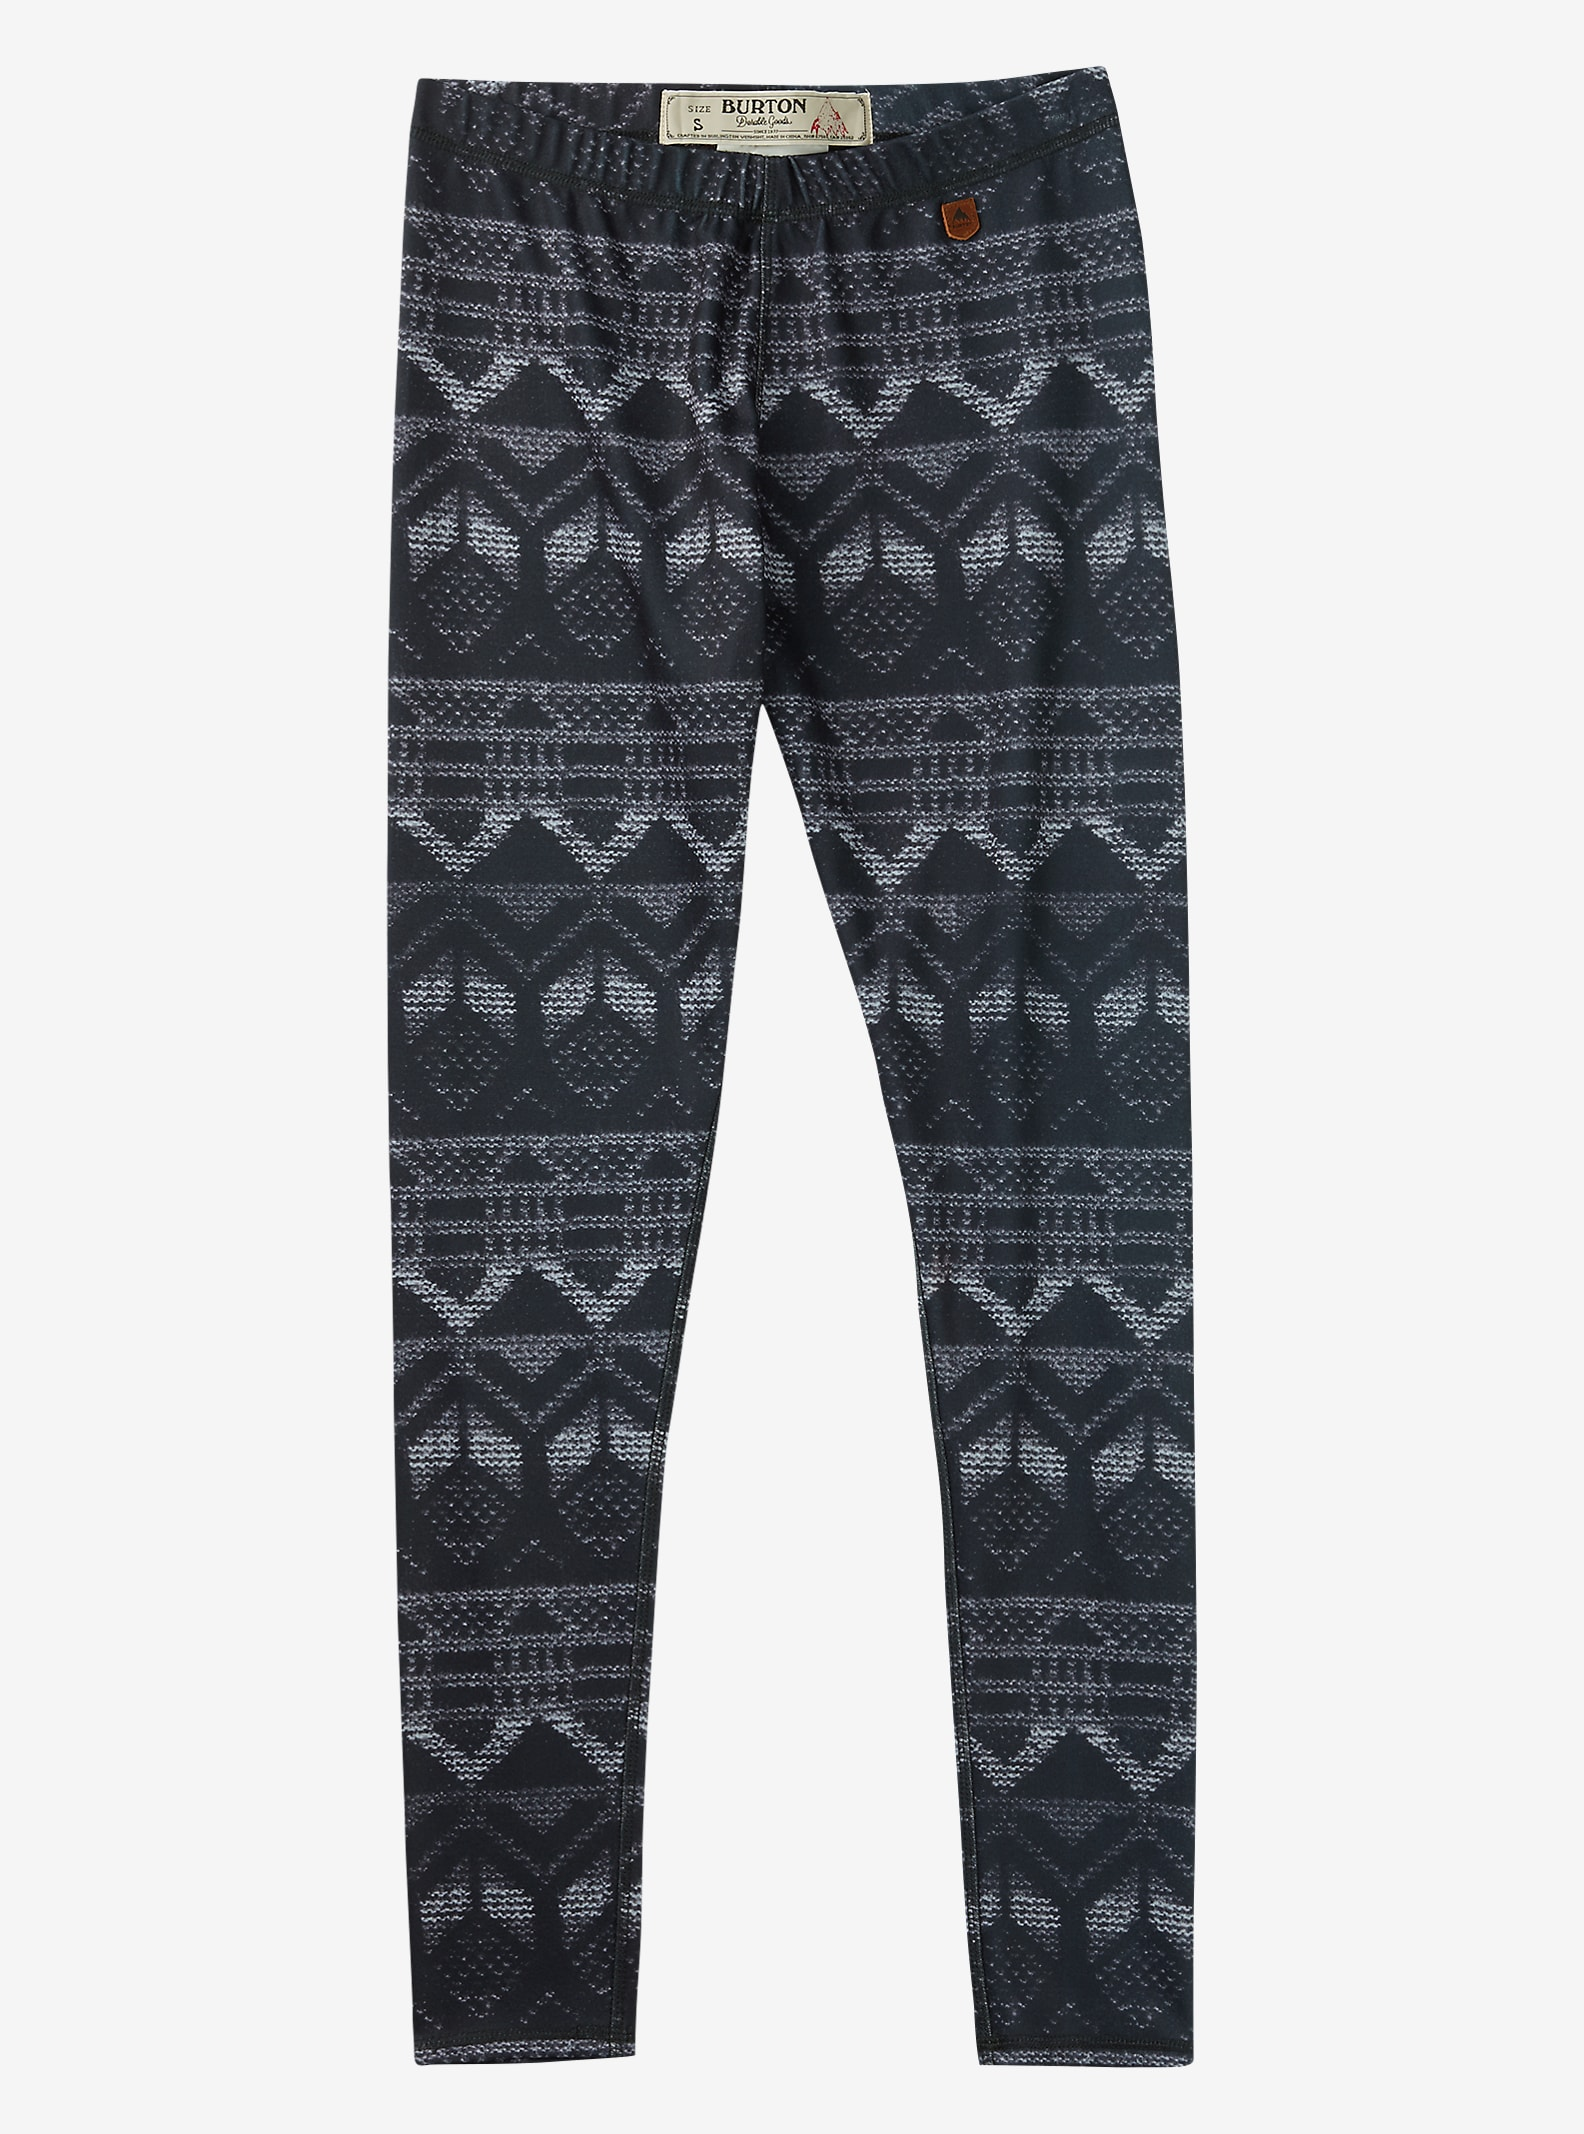 Burton Camano Leggings angezeigt in Carter